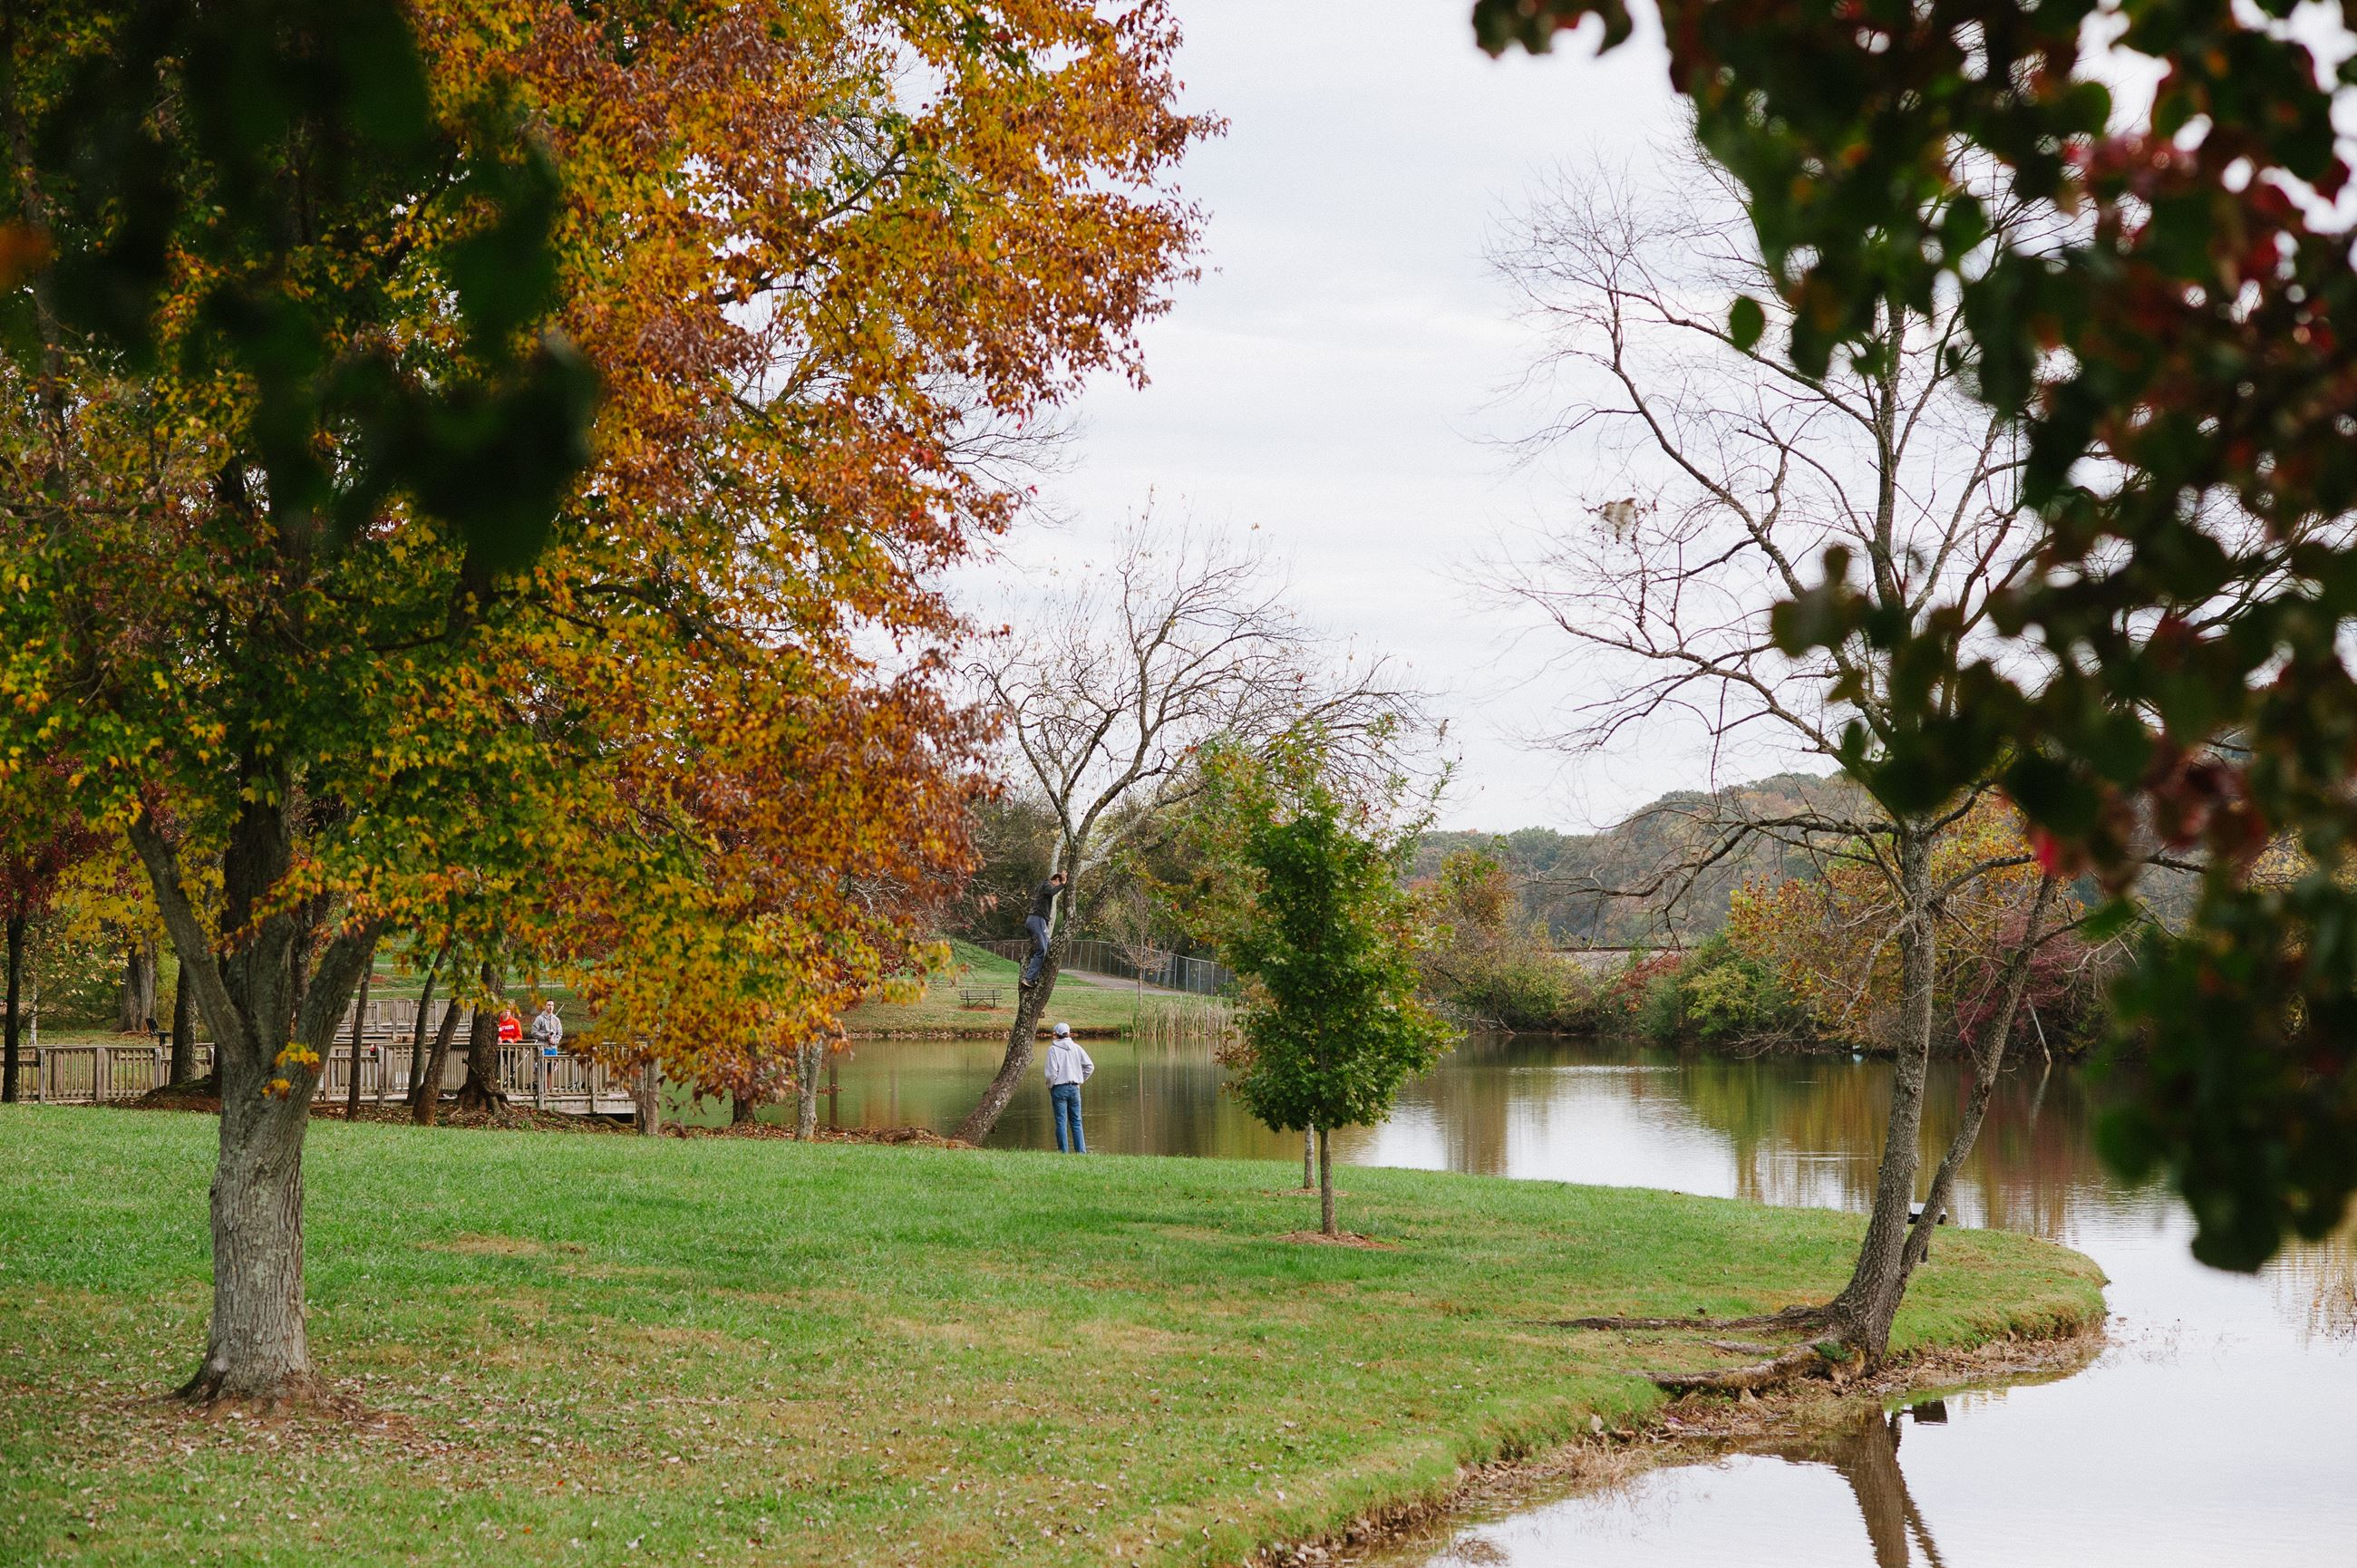 A fall photo of Anchor Park. A beautiful setting with trees and grass beside the water.